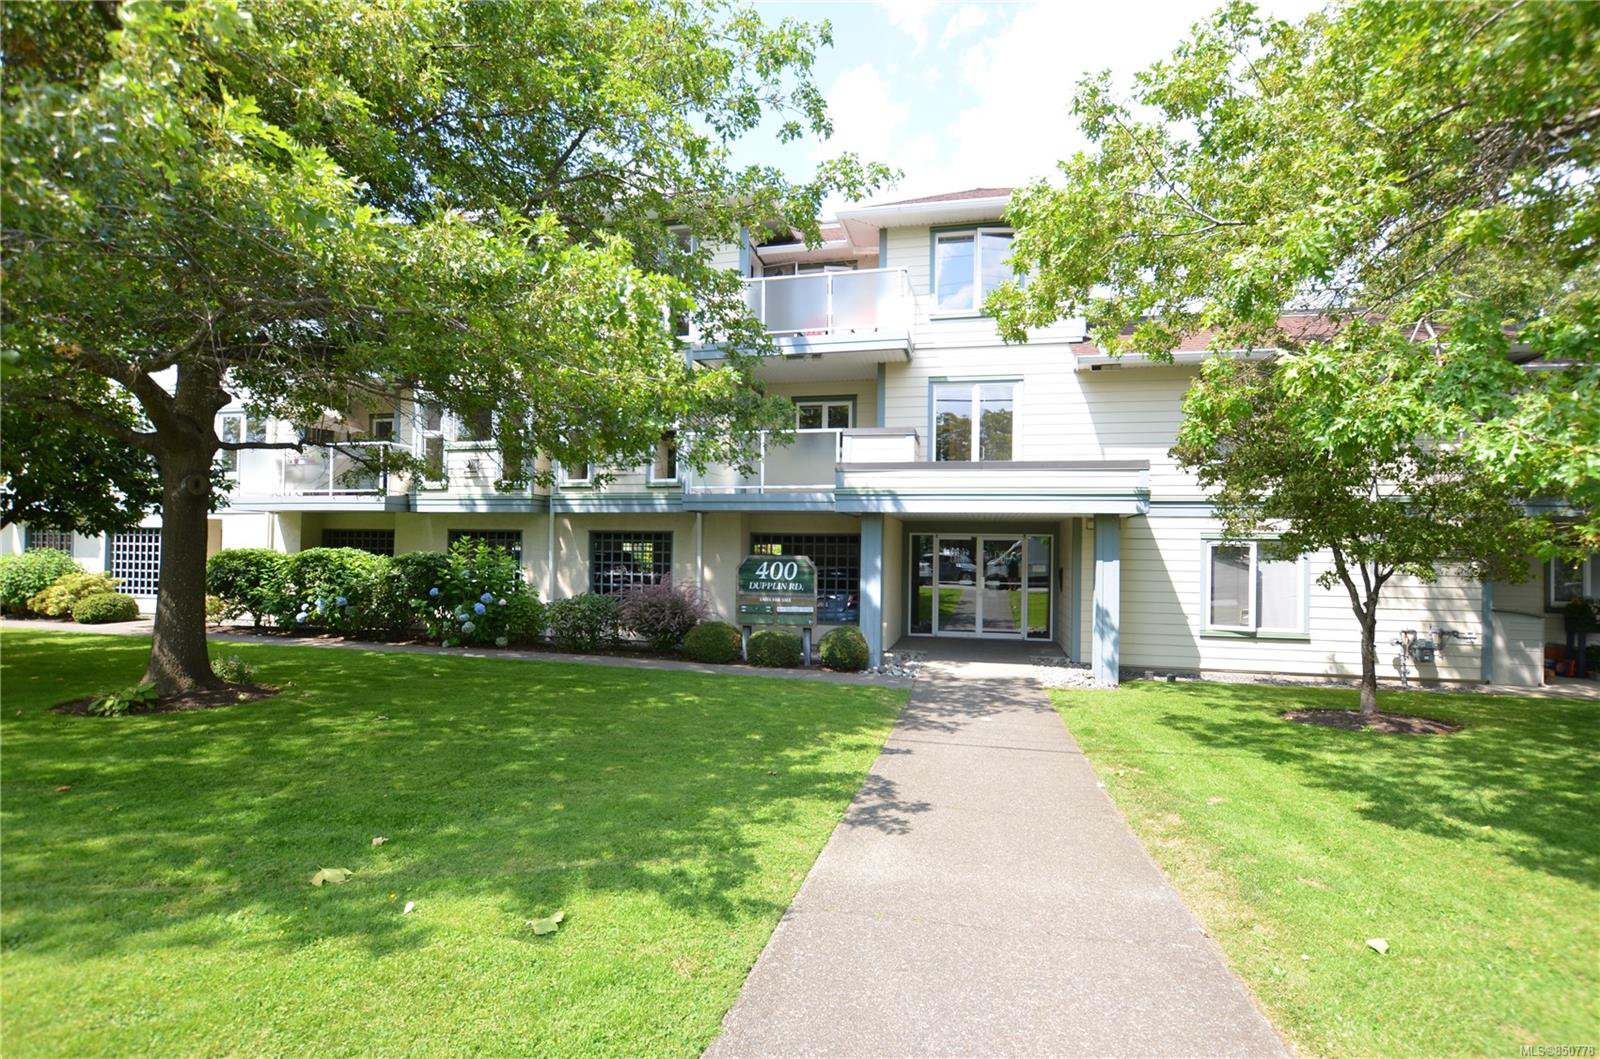 Main Photo: 211 400 Dupplin Rd in : SW Rudd Park Condo for sale (Saanich West)  : MLS®# 850778